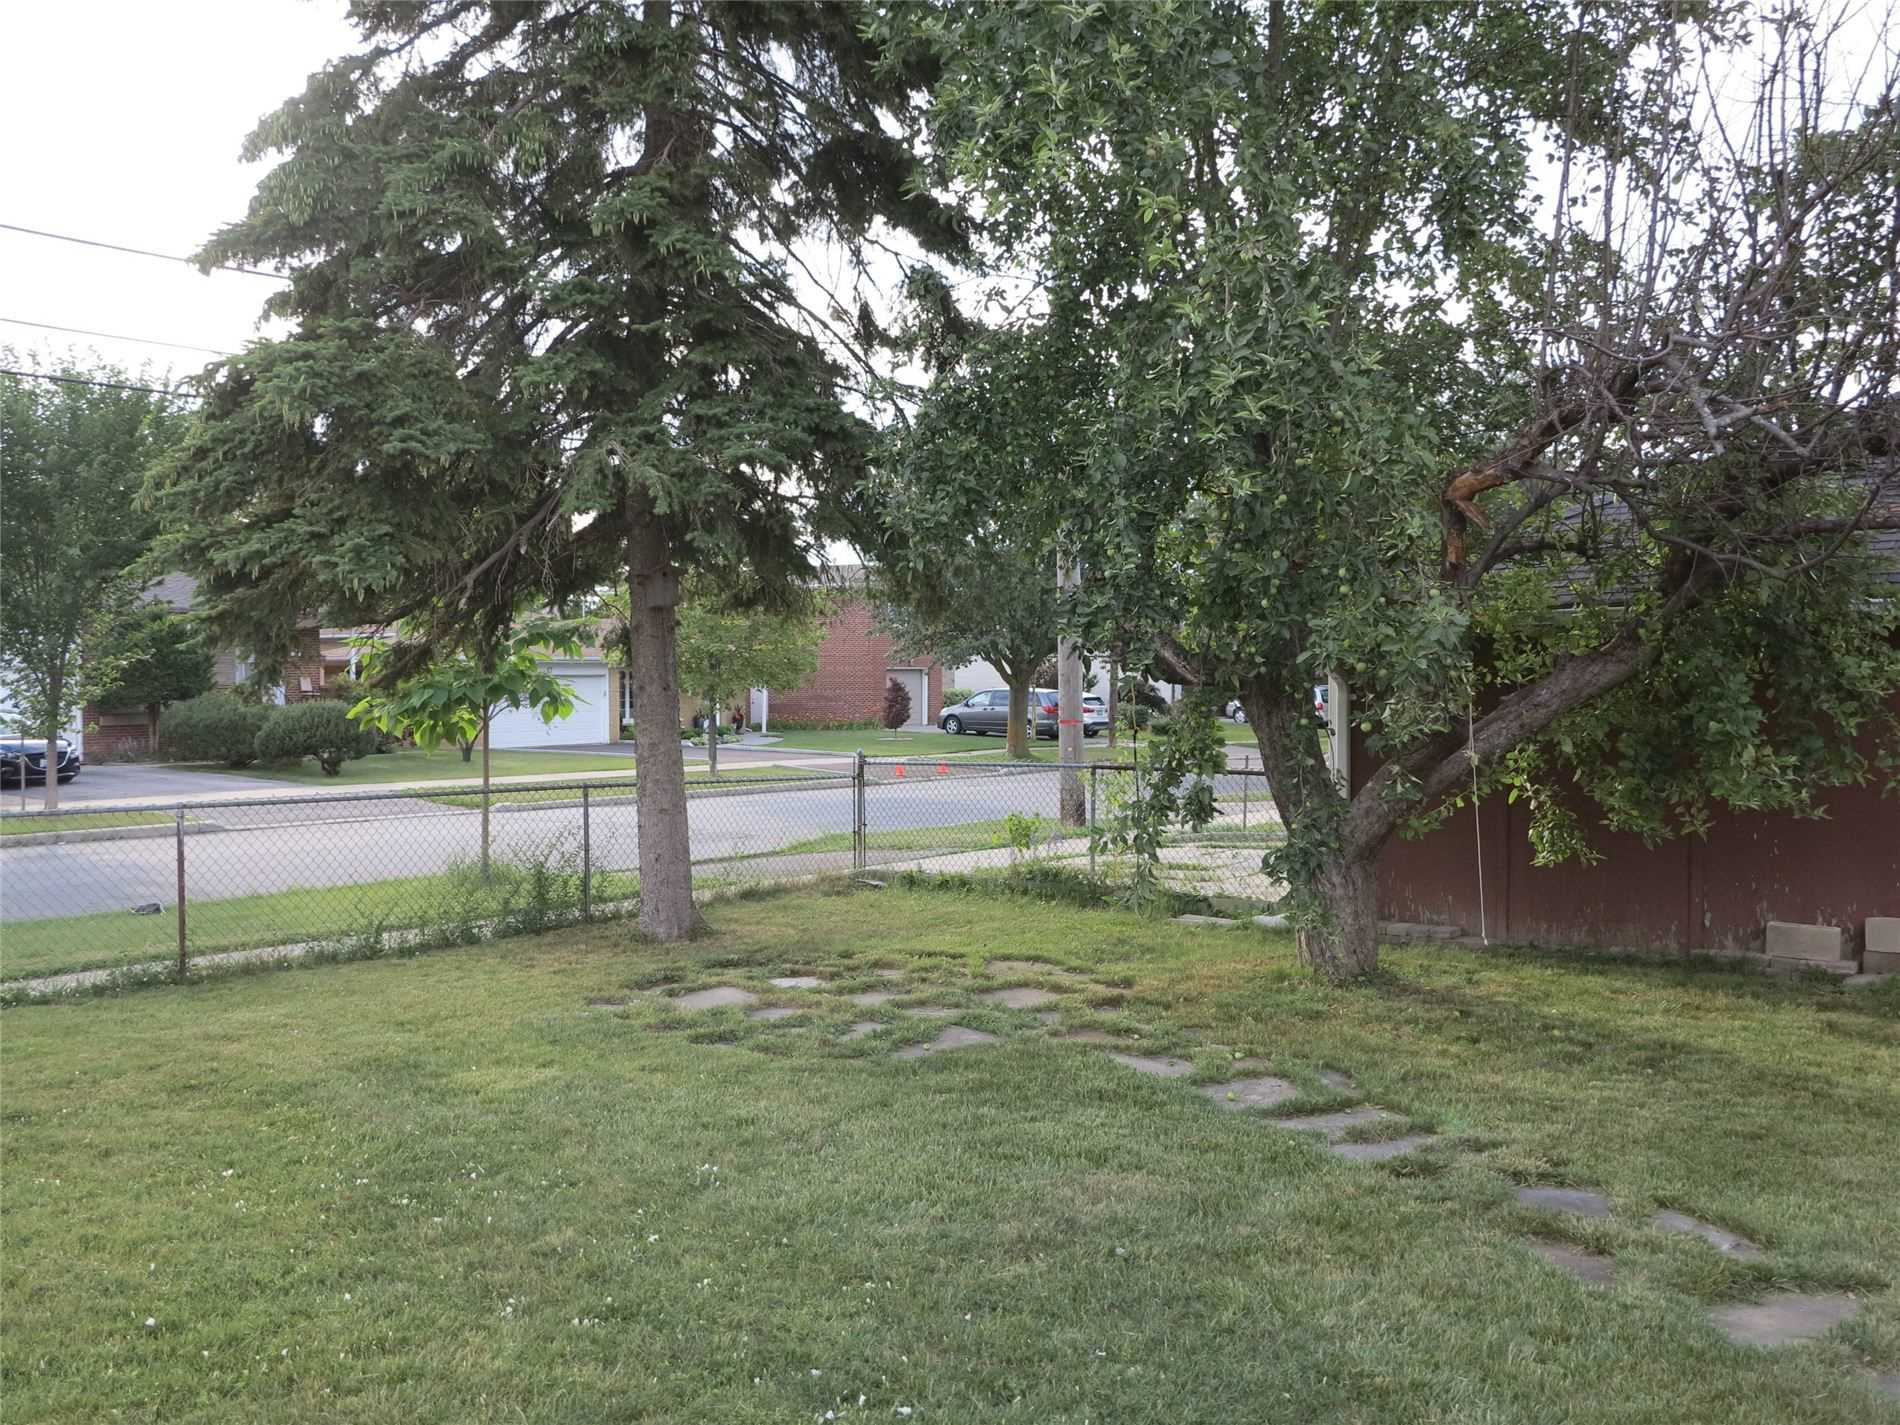 Image 21 of 30 showing inside of 3 Bedroom Detached Bungalow for Lease at 456 Drewry Ave, Toronto M2R2K7